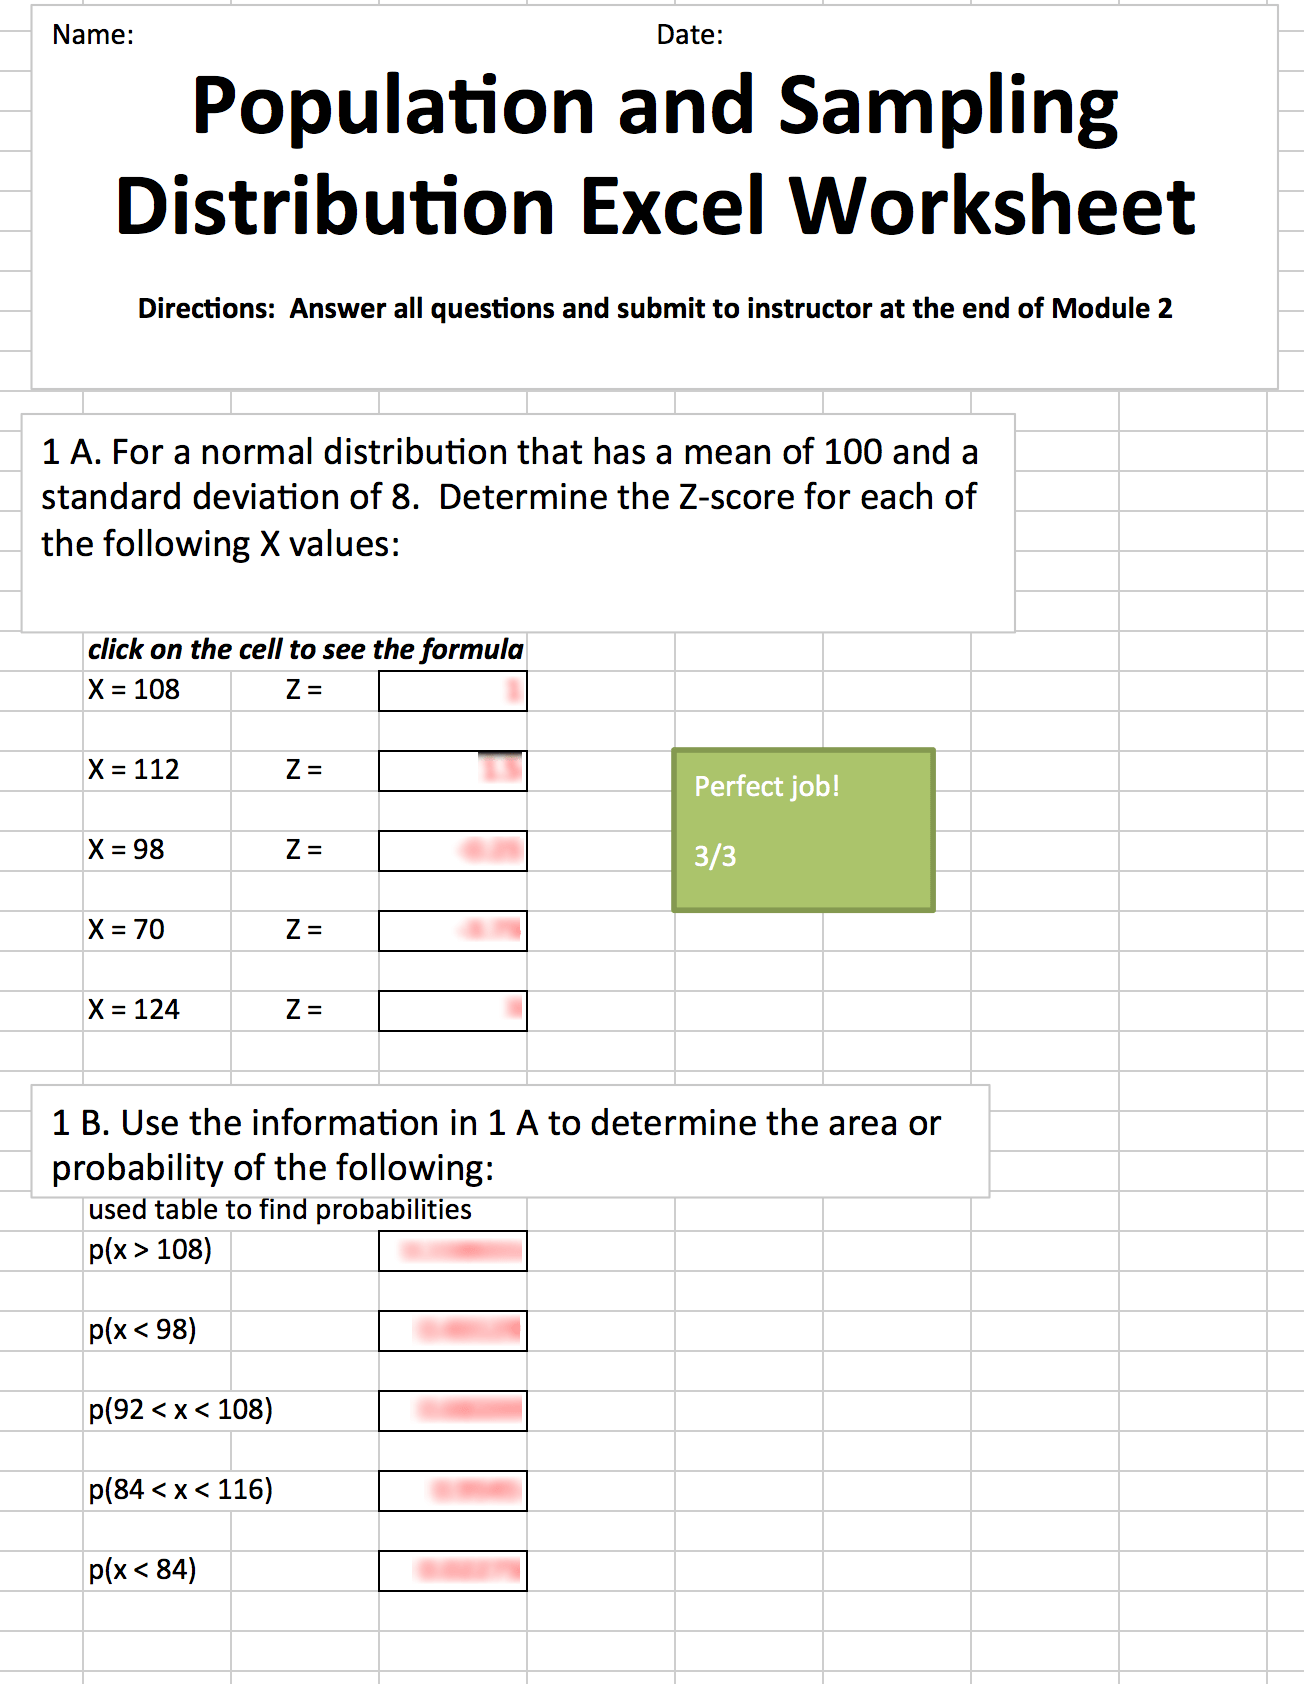 Hlt 362 Module 2 Population And Sampling Distribution Excel Worksheet